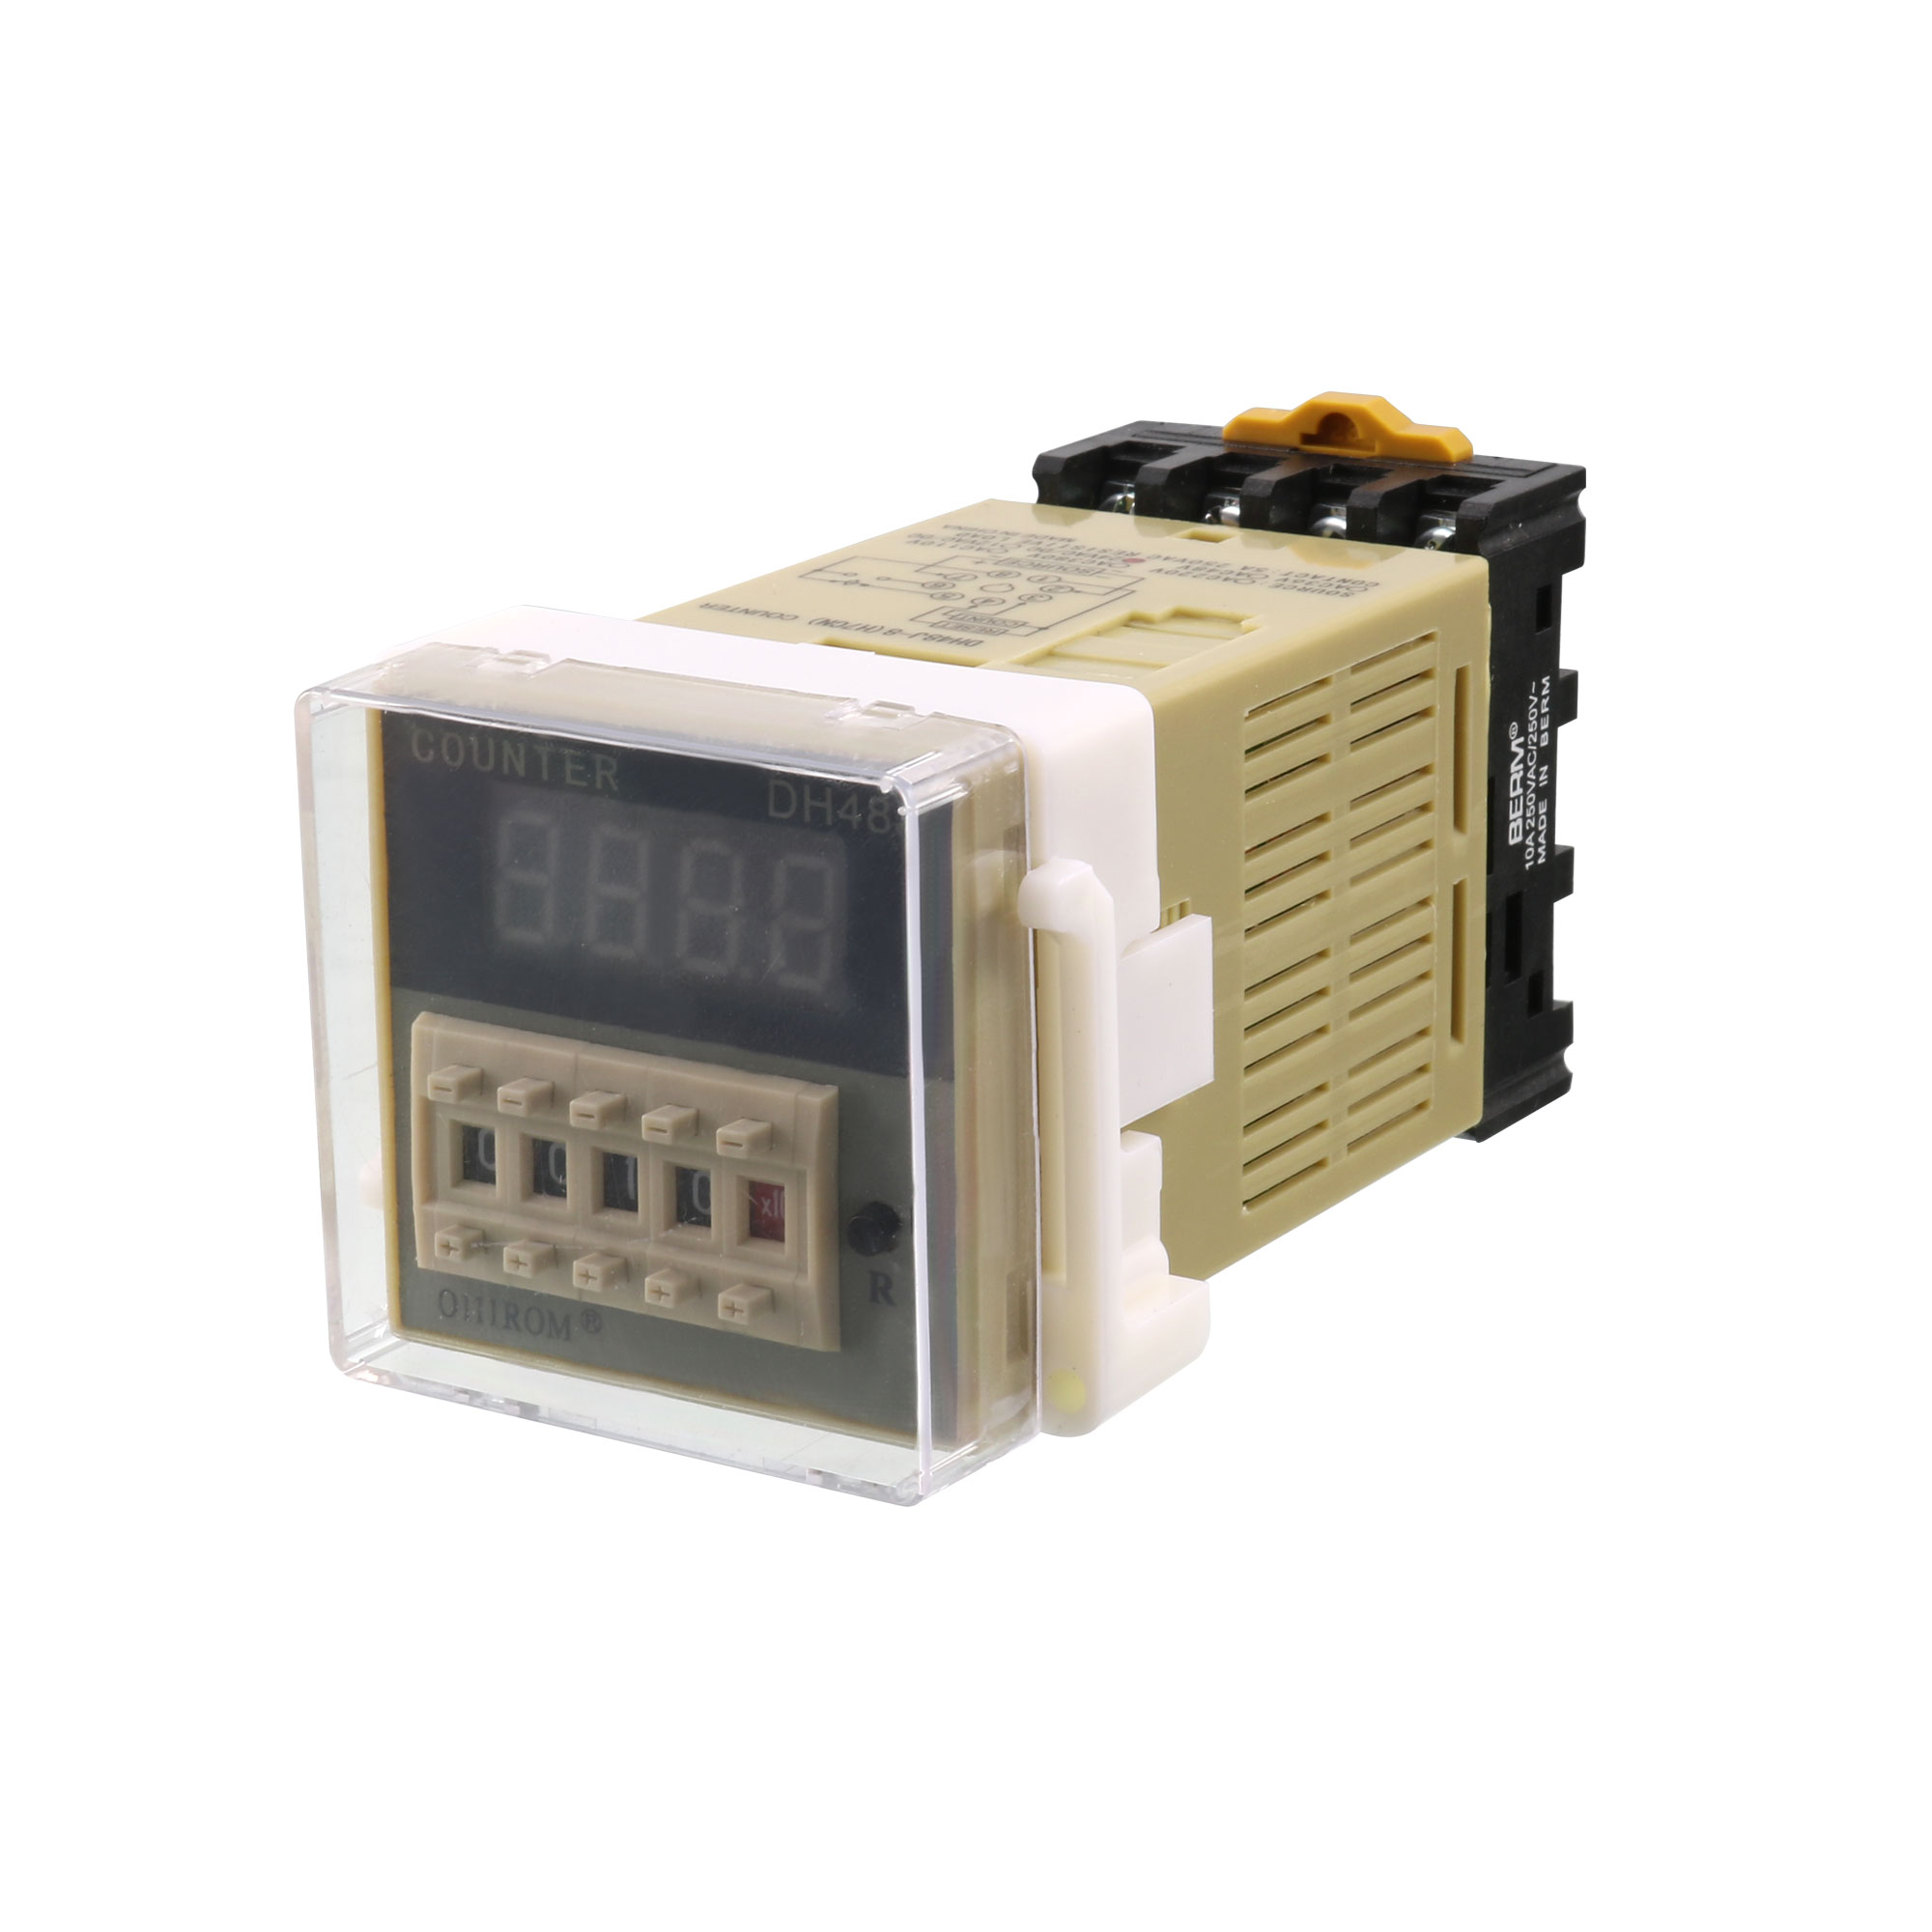 Repair Part Programmable DH48J-8 1-9999 Panel Mount Digital Counter Relay w Base AC/DC 24V 50/60Hz